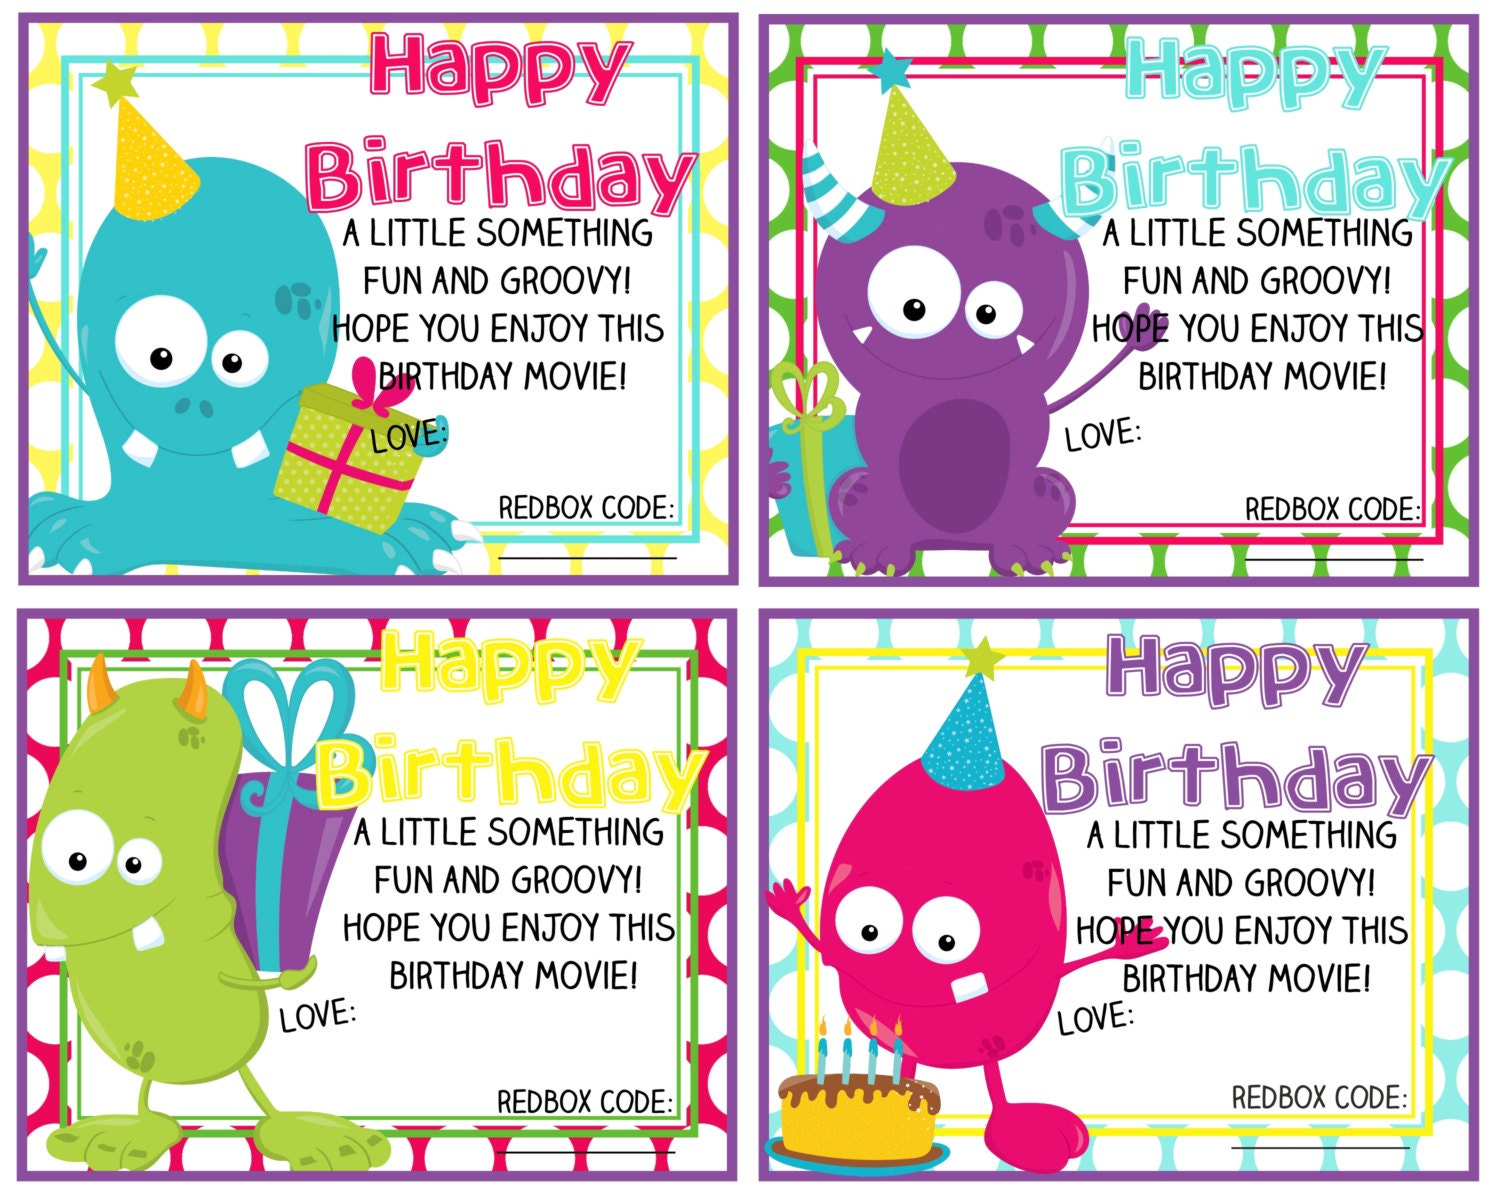 Printable Redbox Birthday Gift Card Happy Birthday MonstersHappy Gift Cards